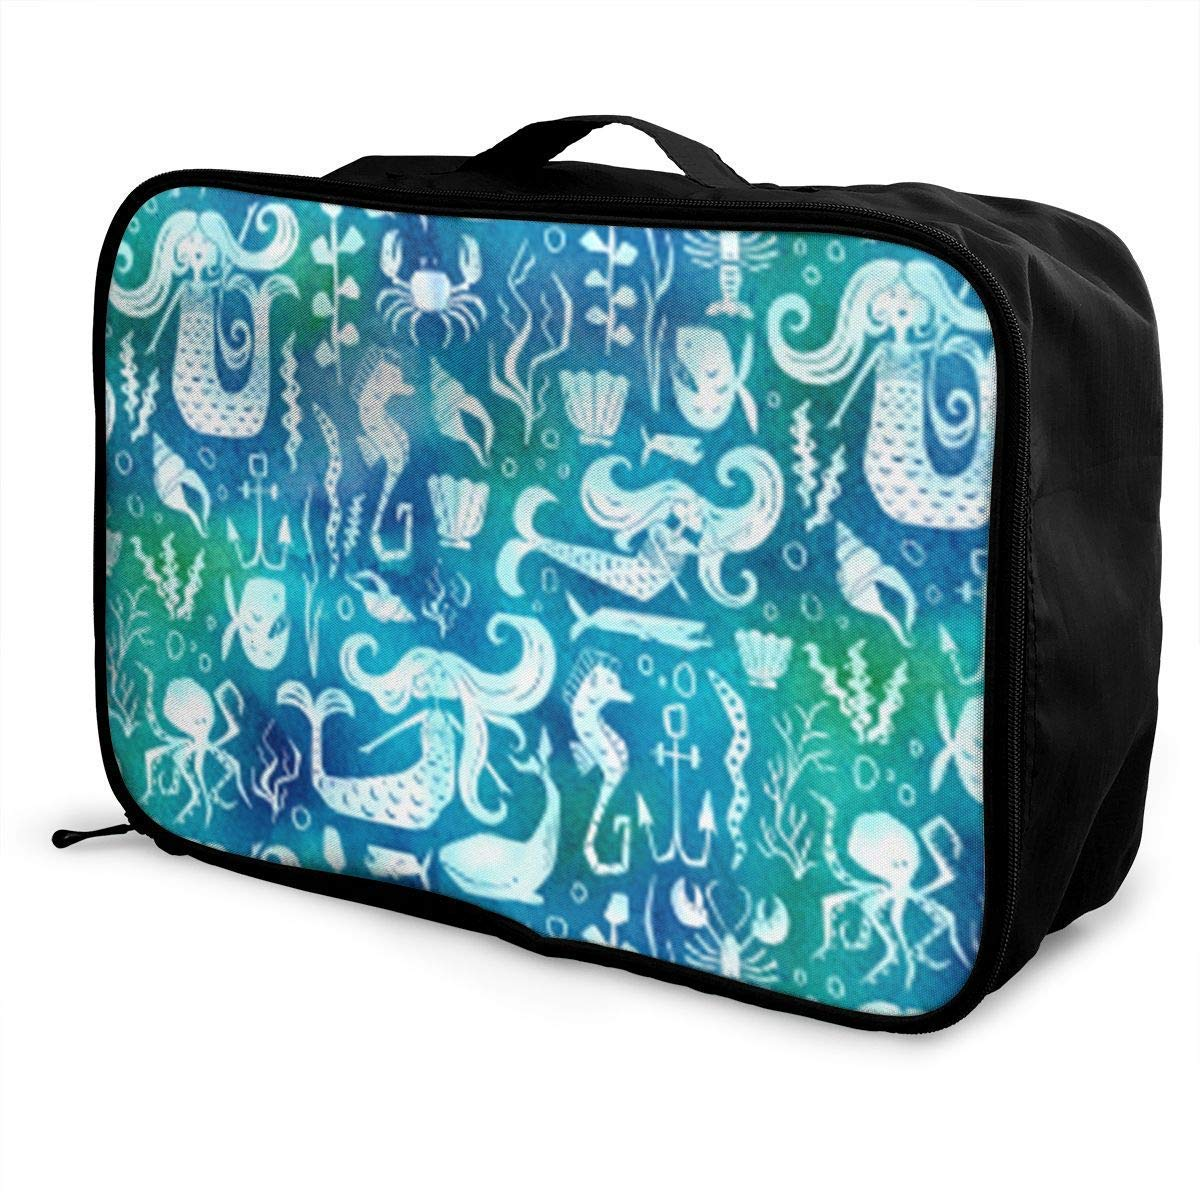 JTRVW Luggage Bags for Travel Portable Luggage Duffel Bag Nautical Mermaid Watercolor Blue Travel Bags Carry-on in Trolley Handle